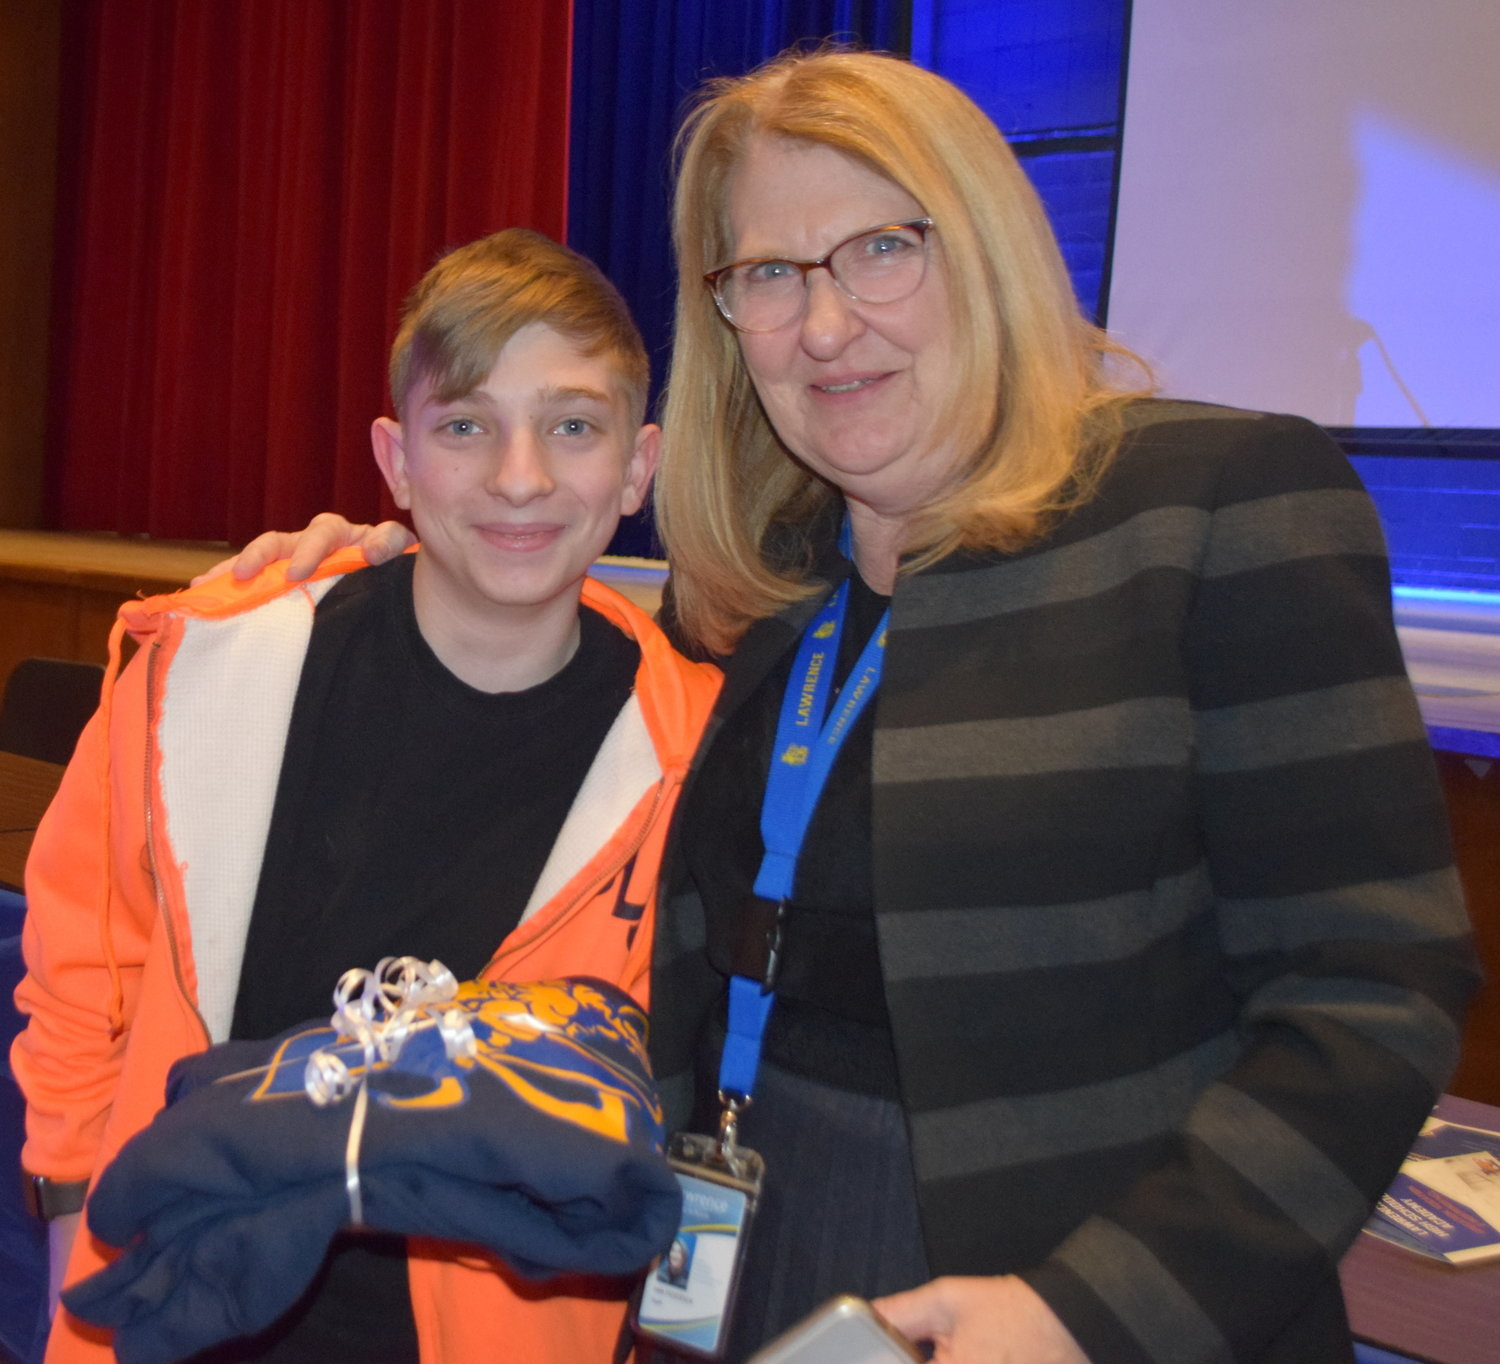 Lawrence High School freshman Brandon Rebel received a sweatshirt with the Golden Tornado mascot inscribed on the front from Superintendent Dr. Ann Pedersen for his work on the updated district website.